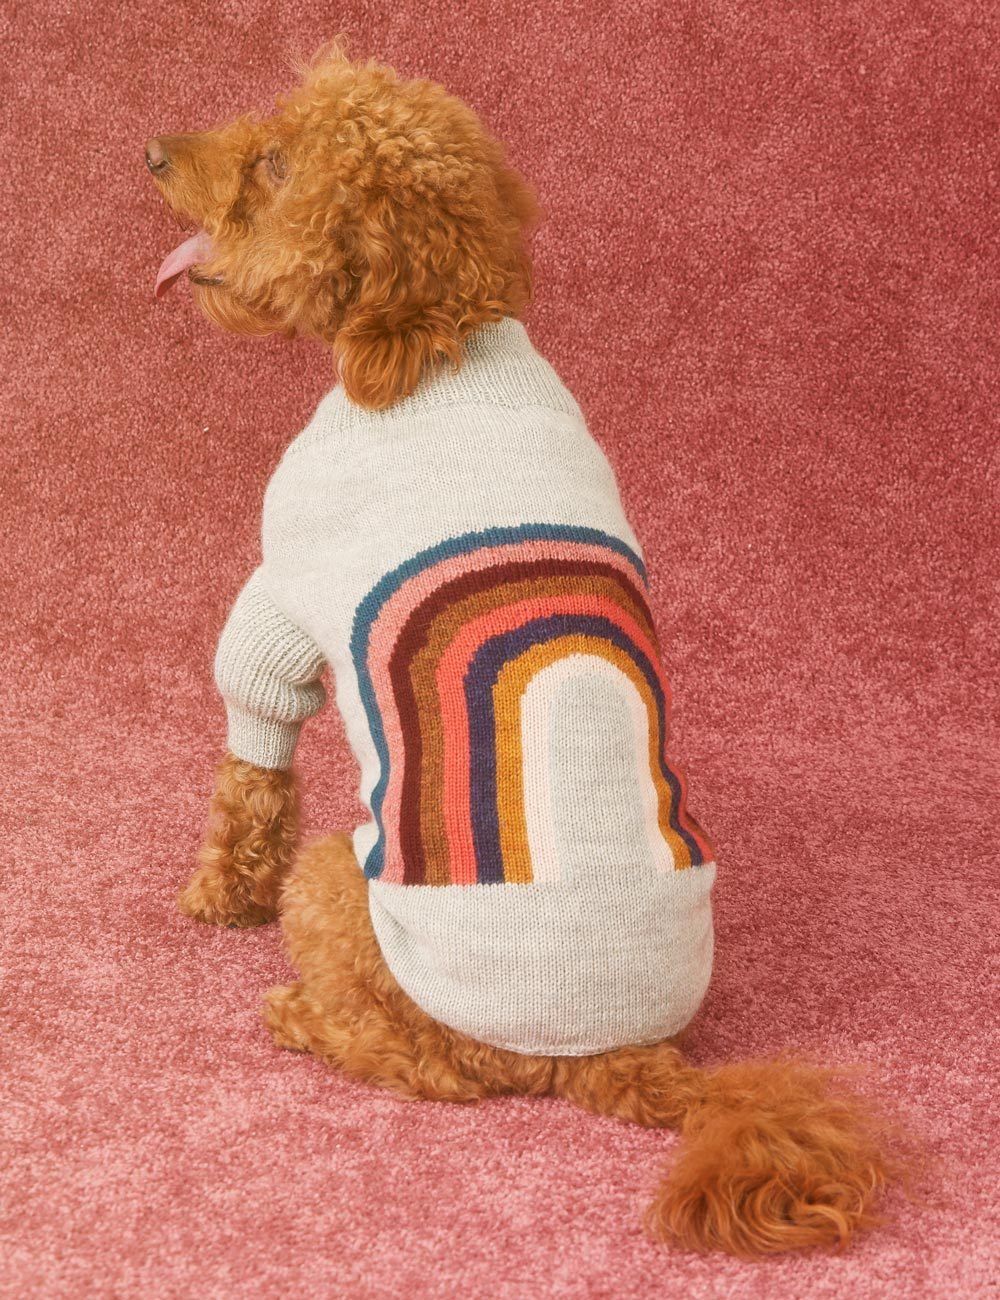 Our favourite luxury dog accessories of 2018 - featuring all the hottest pet trends we're loving right now, female owned brands, and fair trade products.